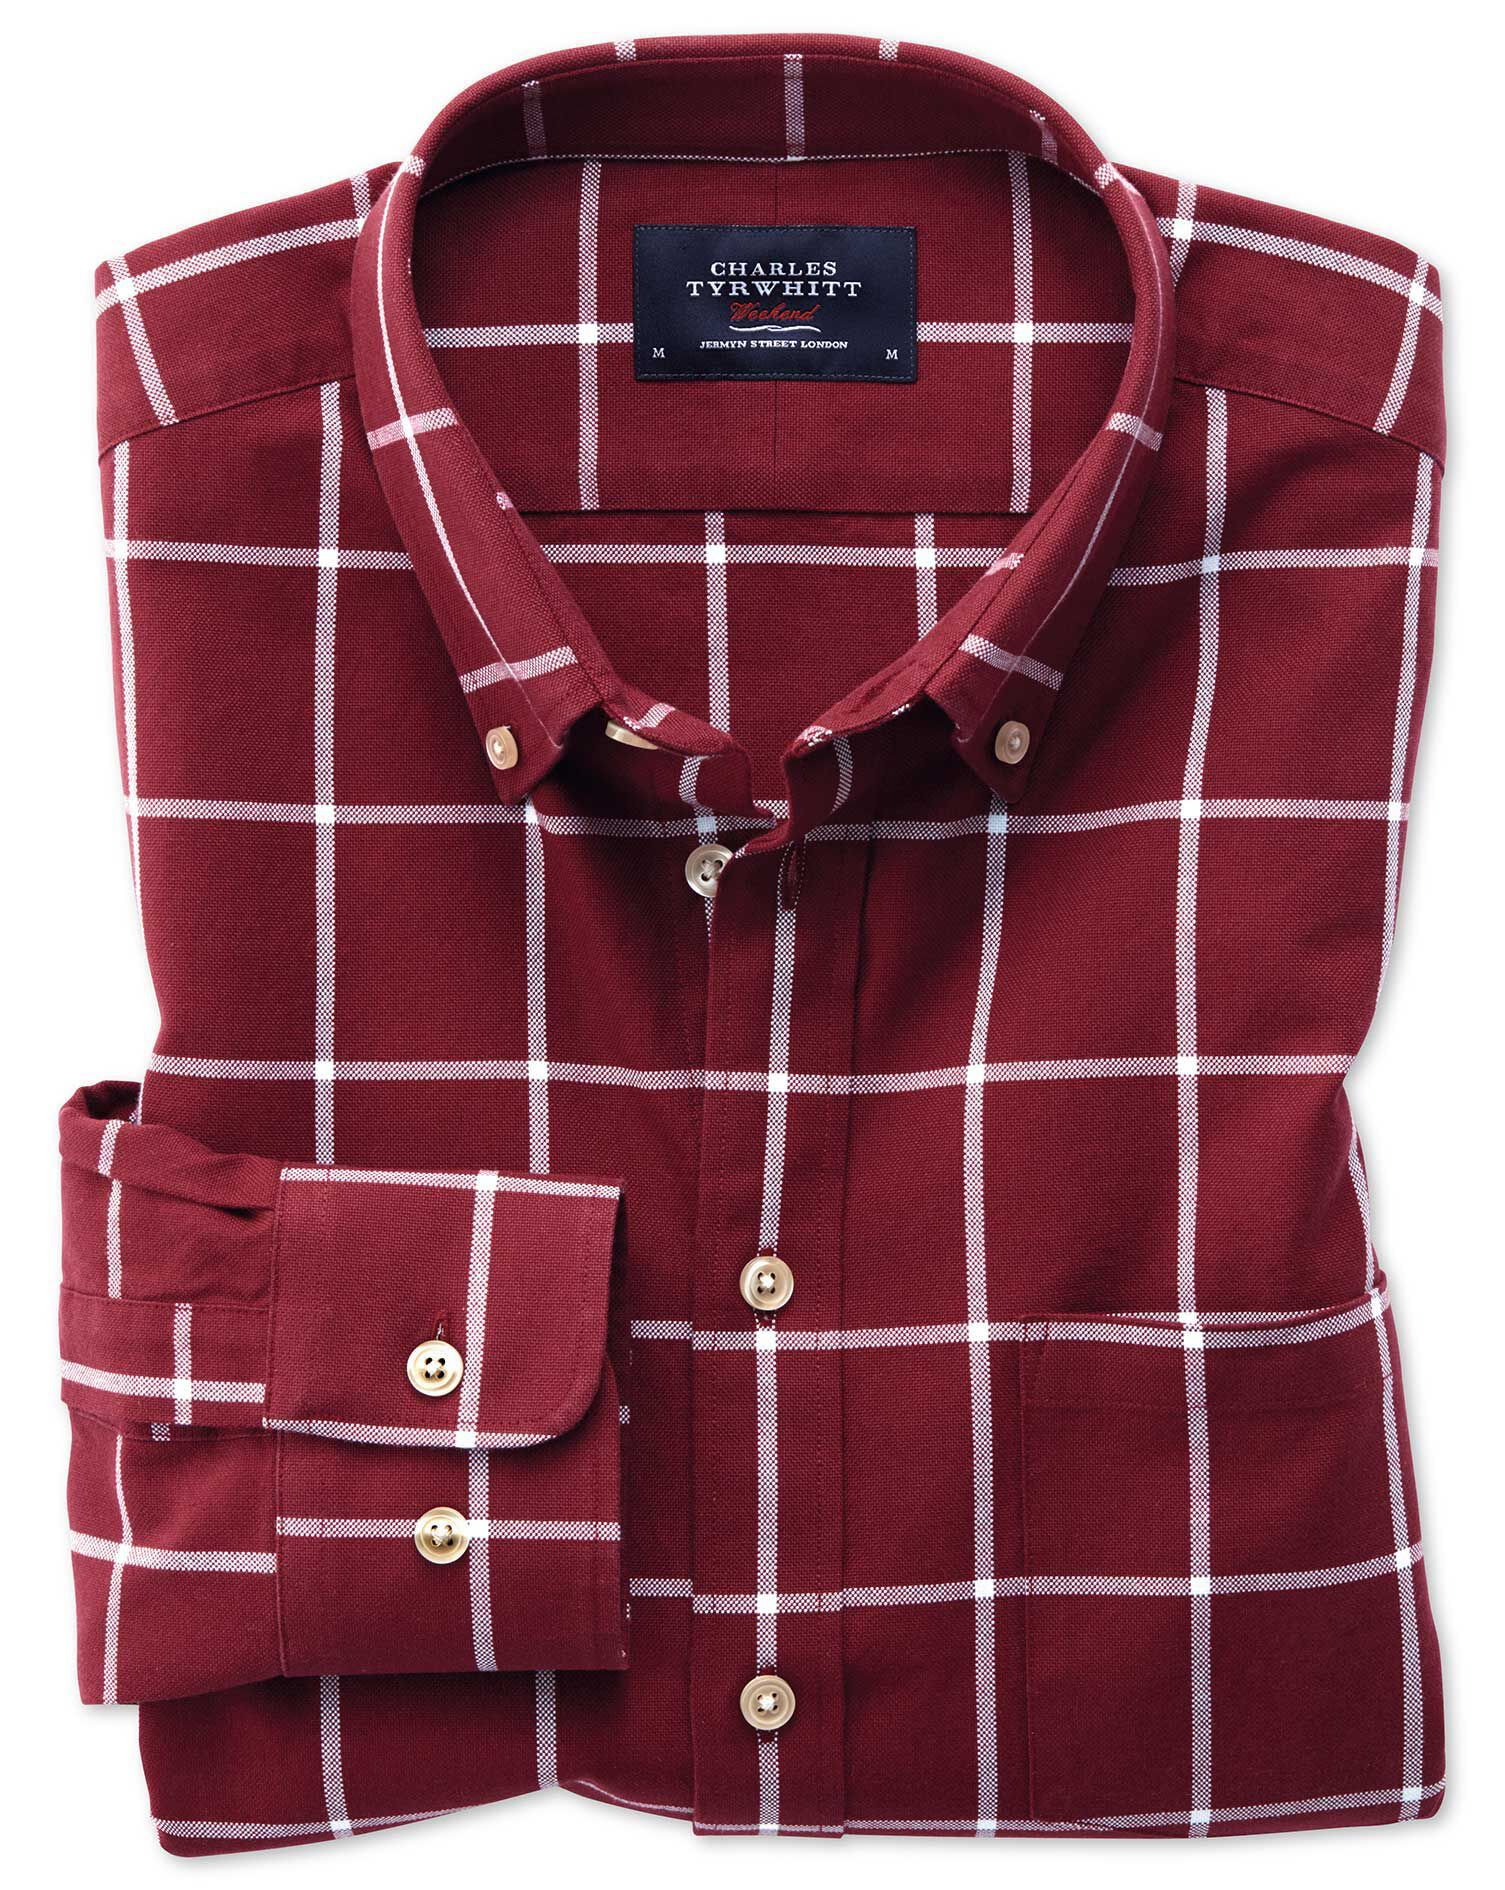 Extra Slim Fit Button-Down Washed Oxford Burgundy and White Check Cotton Shirt Single Cuff Size Smal